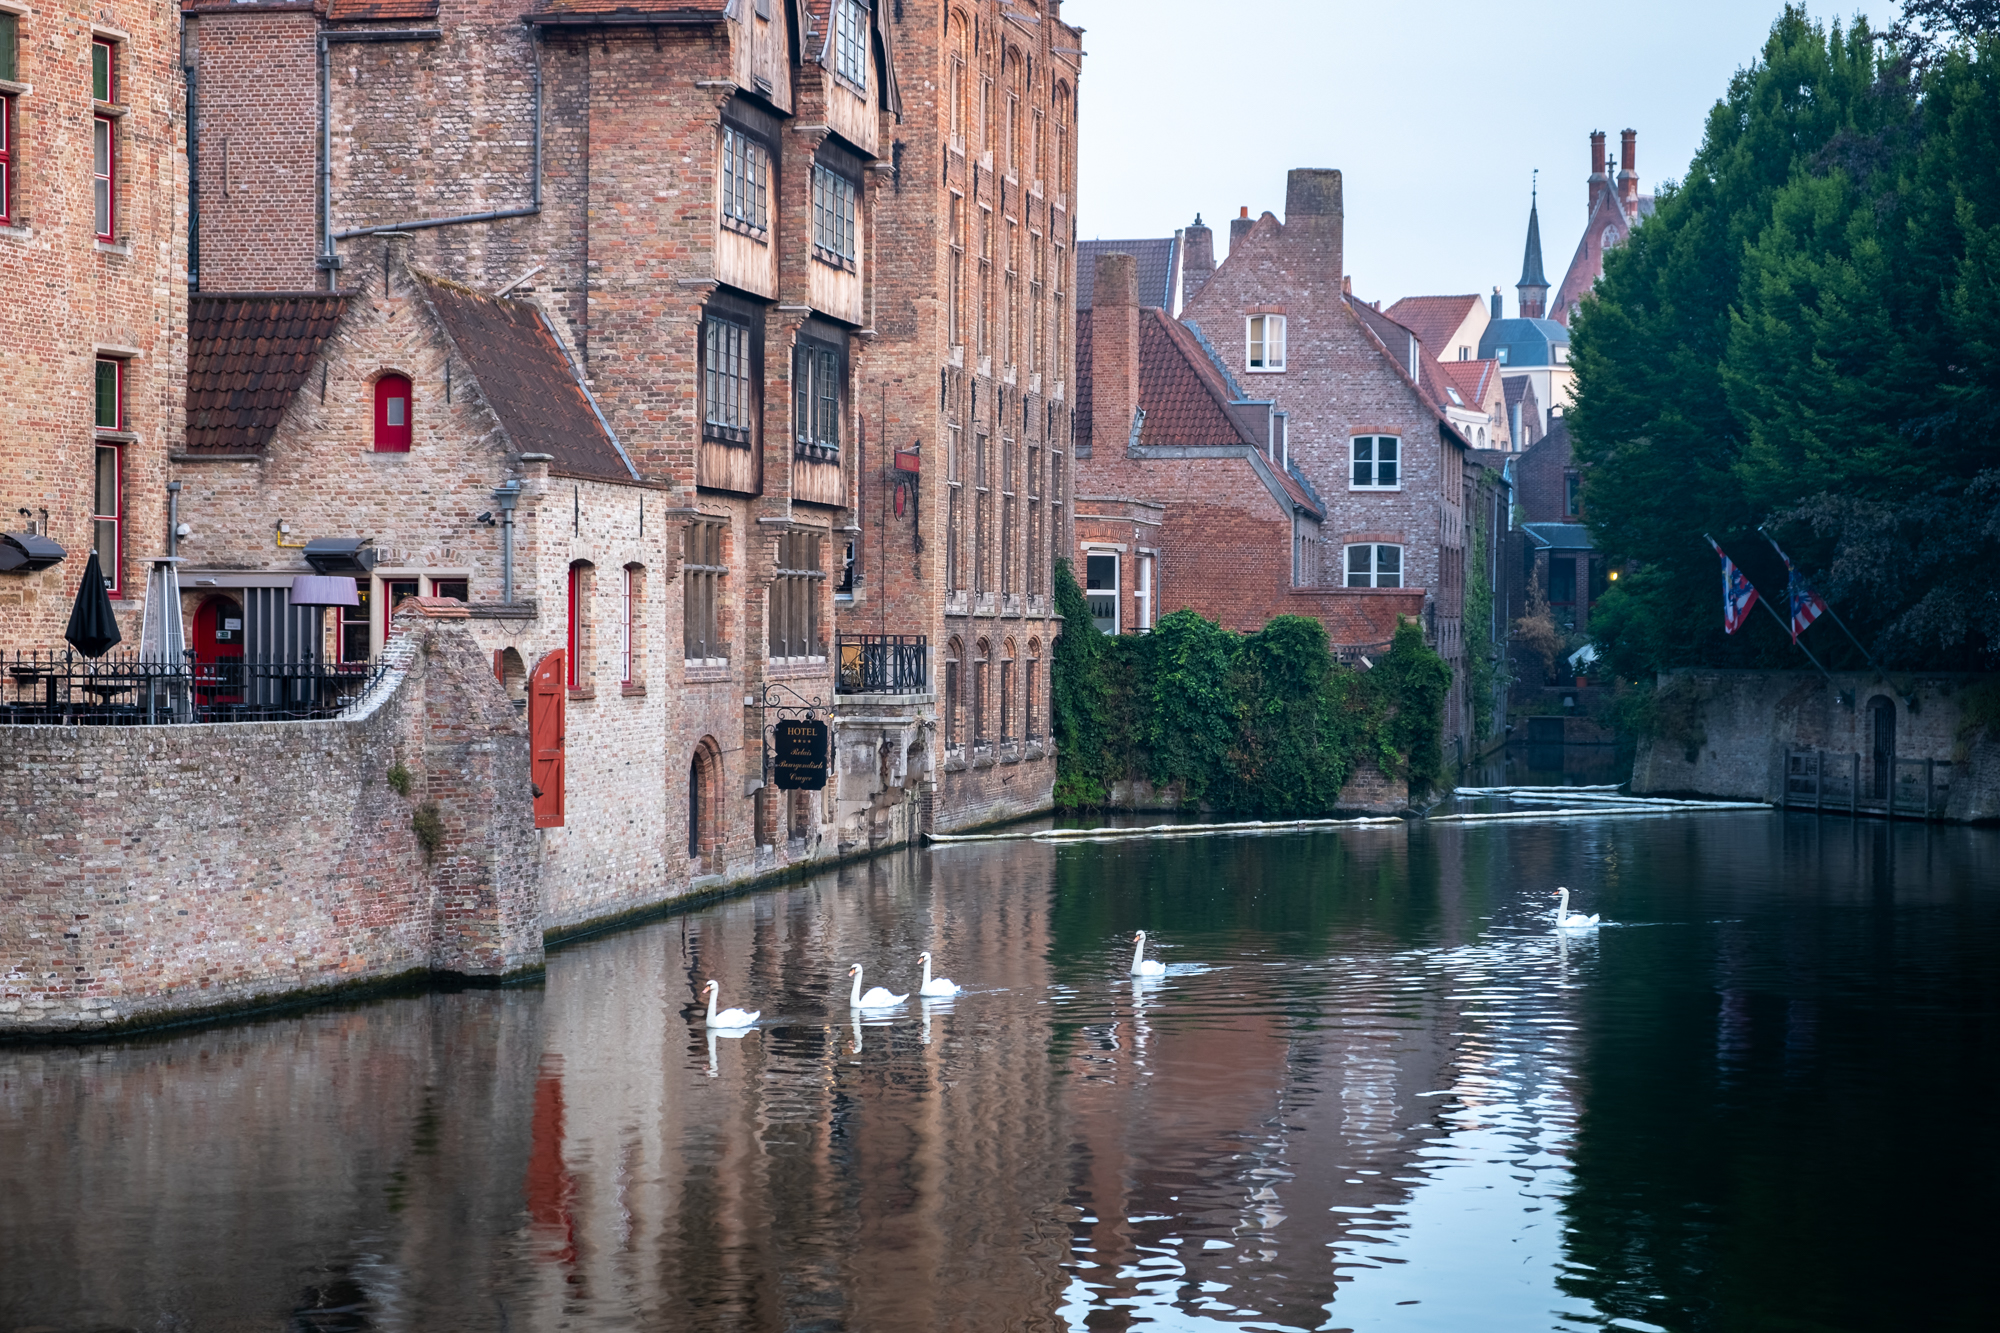 A photo of swans on the Dijver Canal at the Relais Bourgondisch Cruyce in Bruges, Belgium taken by Trevor Sherwin